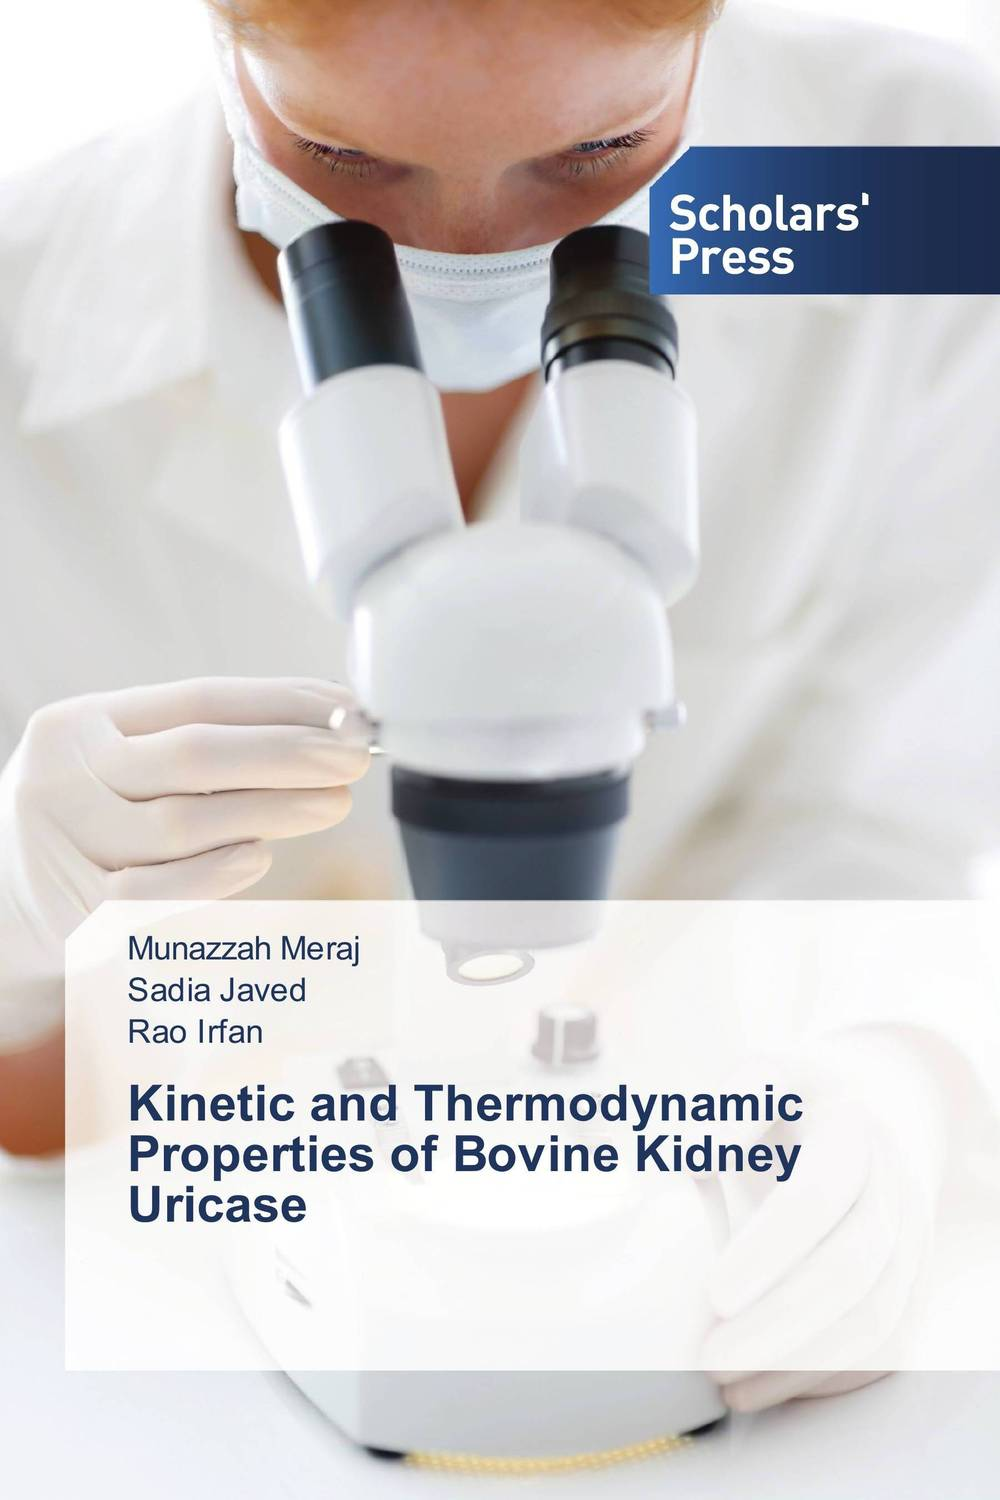 Kinetic and Thermodynamic Properties of Bovine Kidney Uricase 1 box blood uric acid balance tea lower uric acid treatment gout remedios natural acido urico